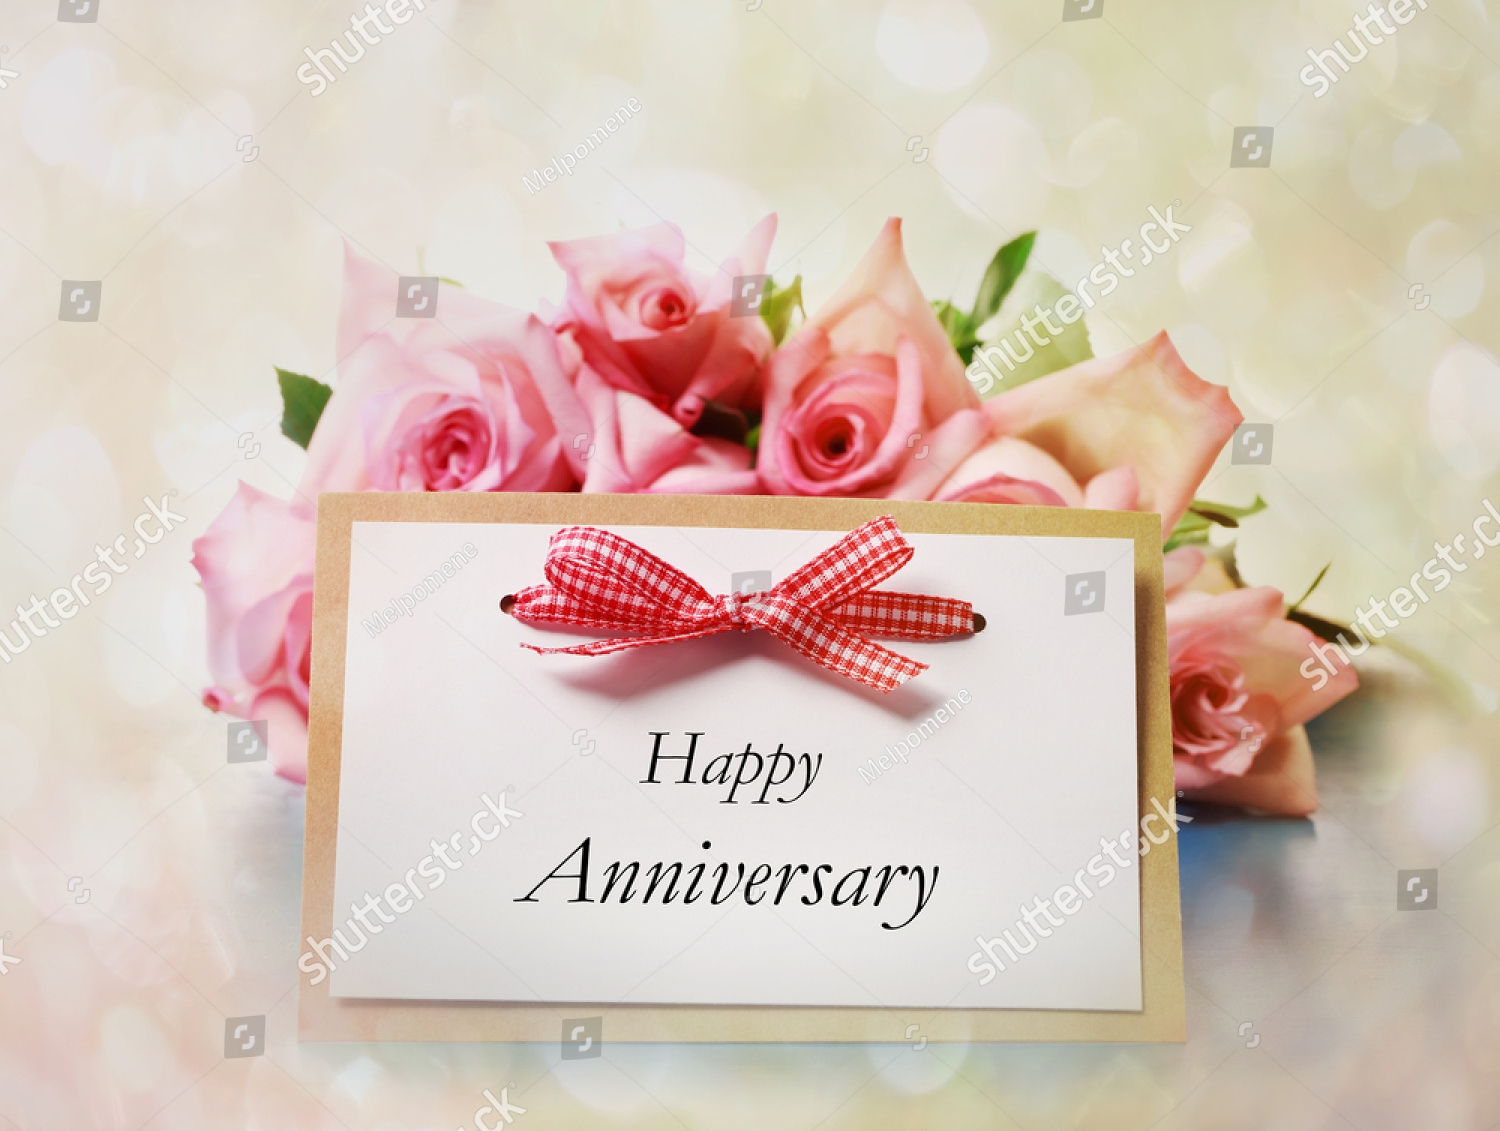 Examples of anniversary greeting cards